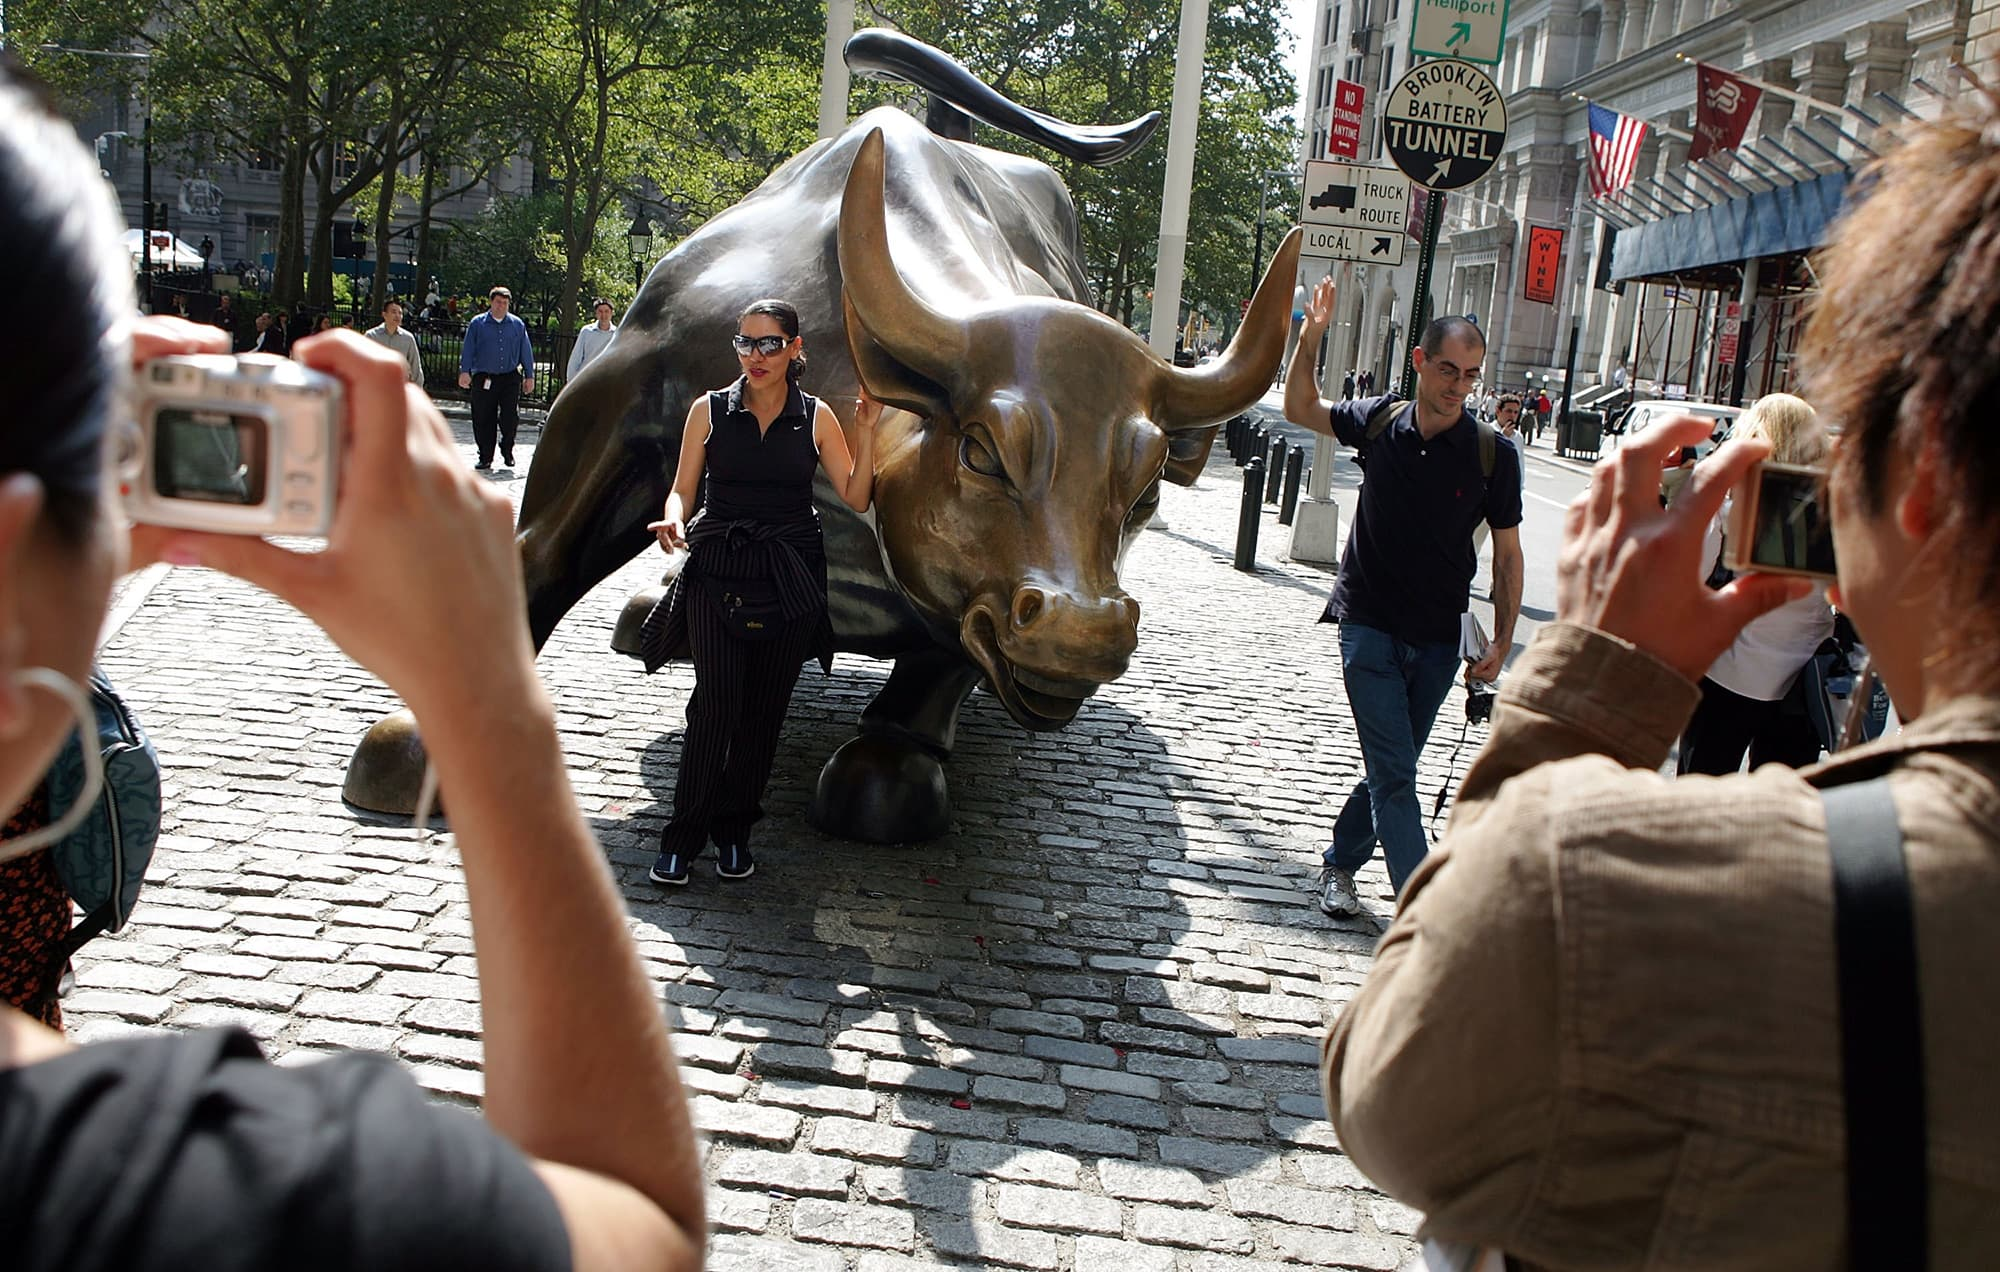 People take photos of the famous bull statue near the New York Stock Exchange in New York City.